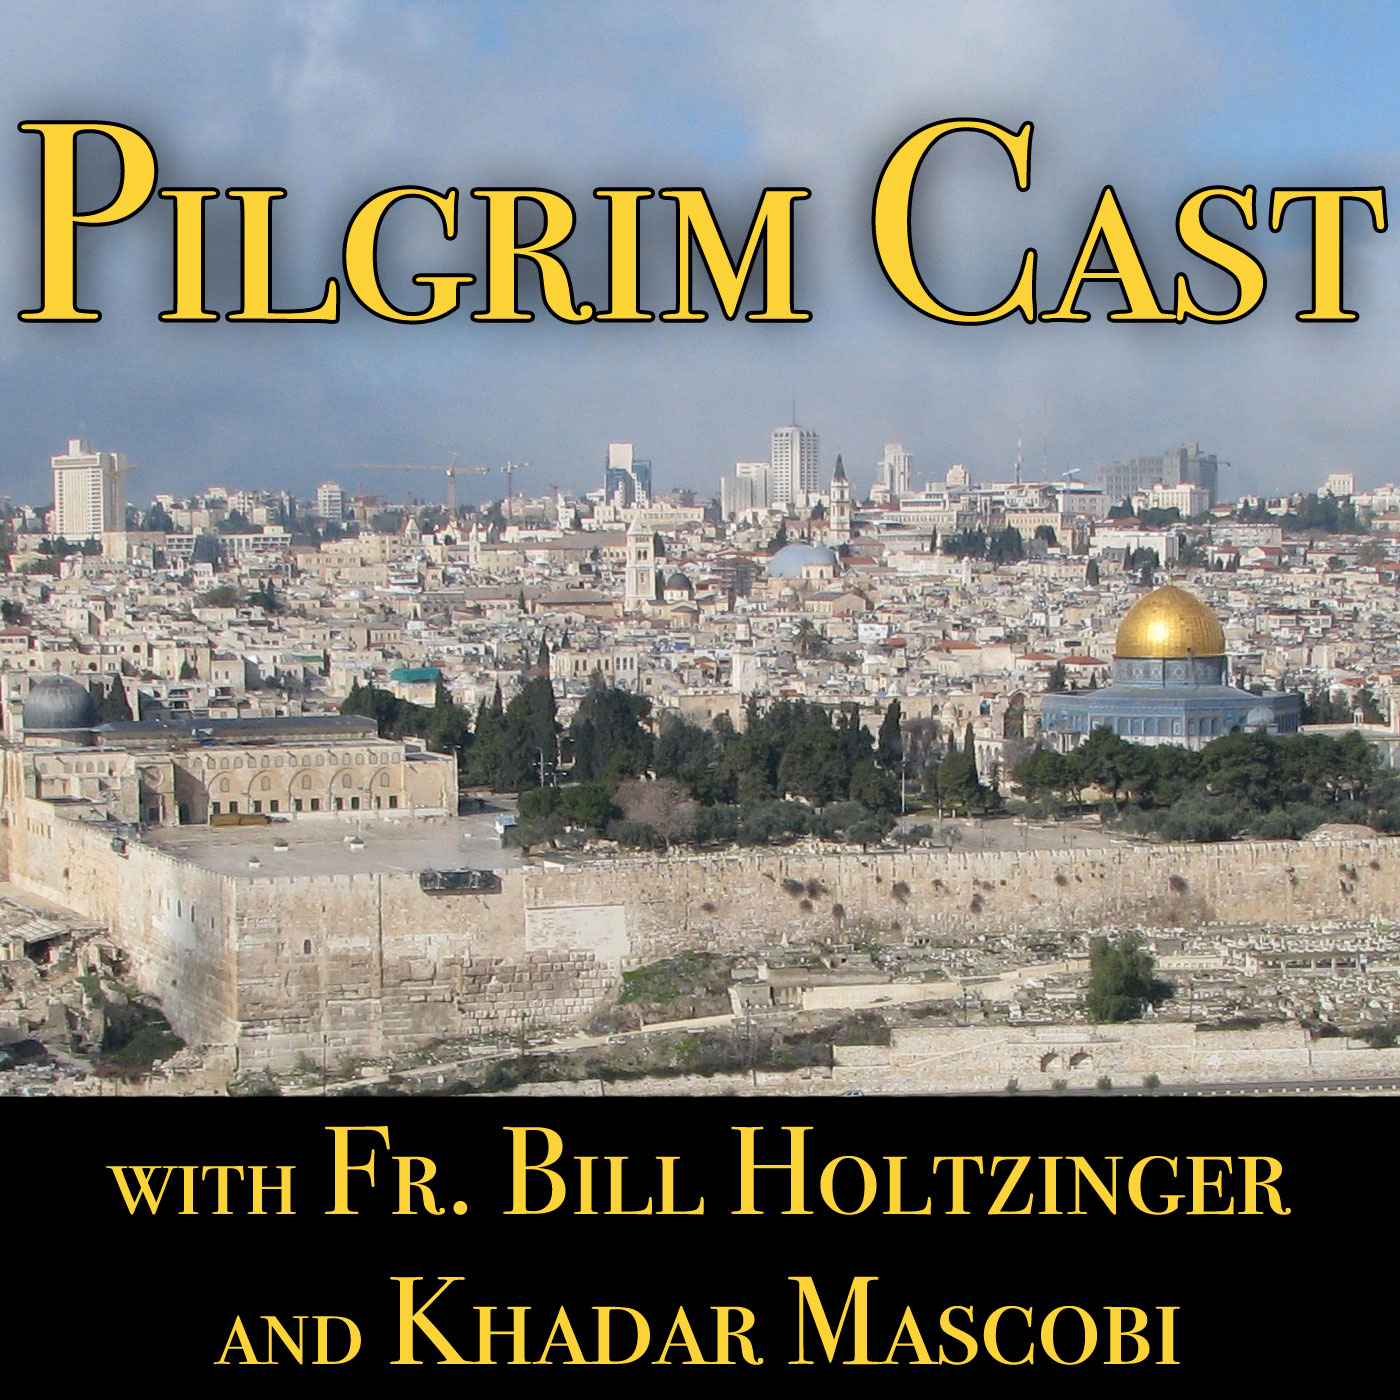 Journeys of Faith in the Holy Land